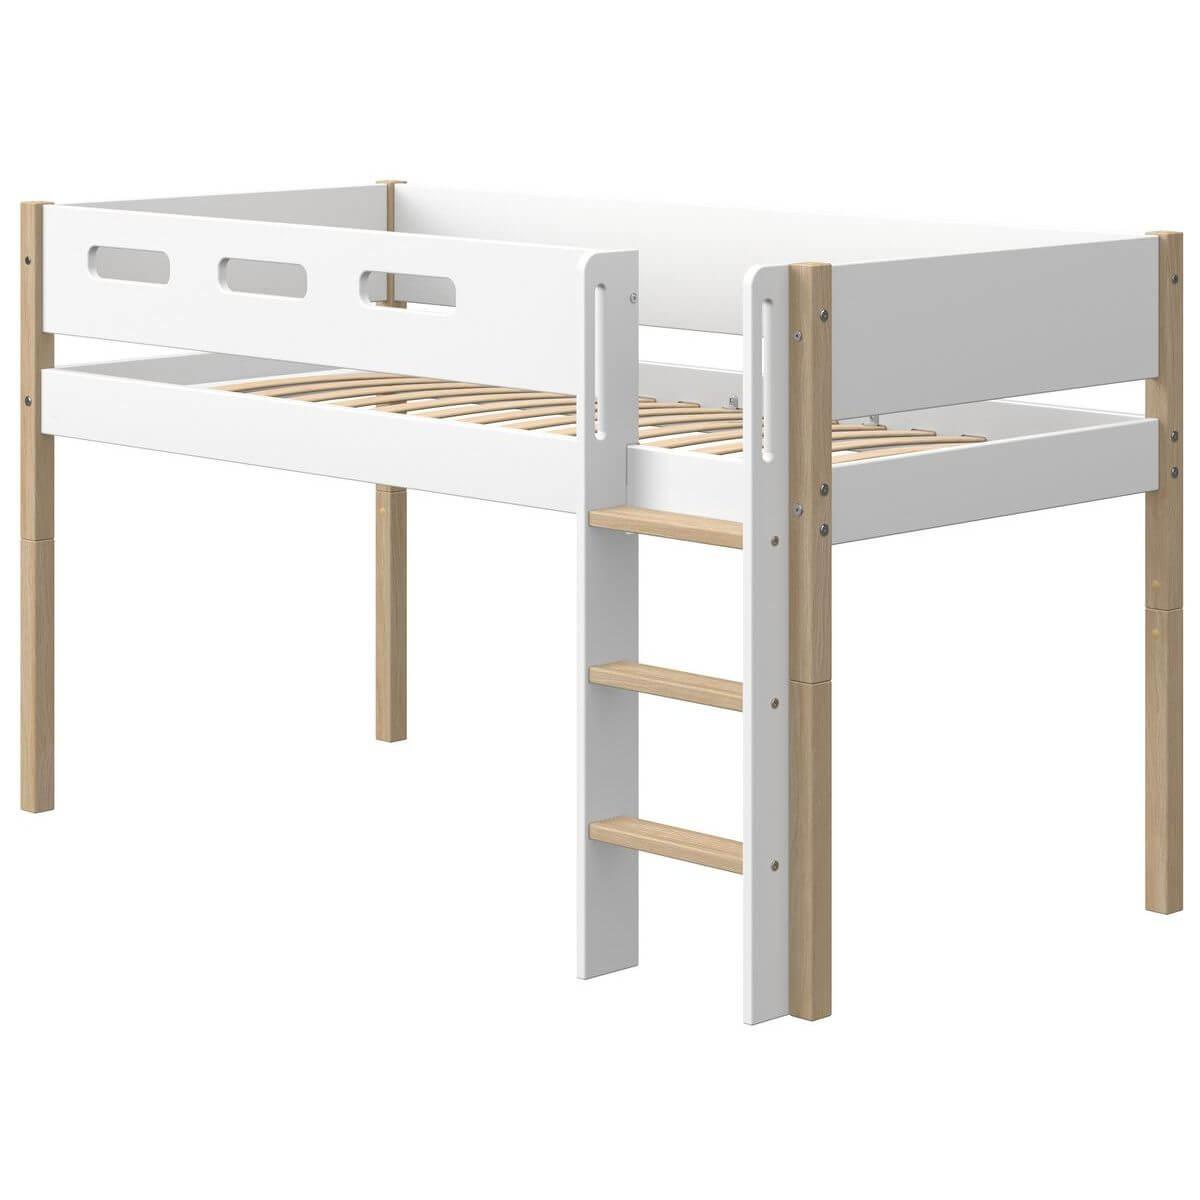 Cama media alta 90x200cm escalera recta NOR Flexa roble-blanco